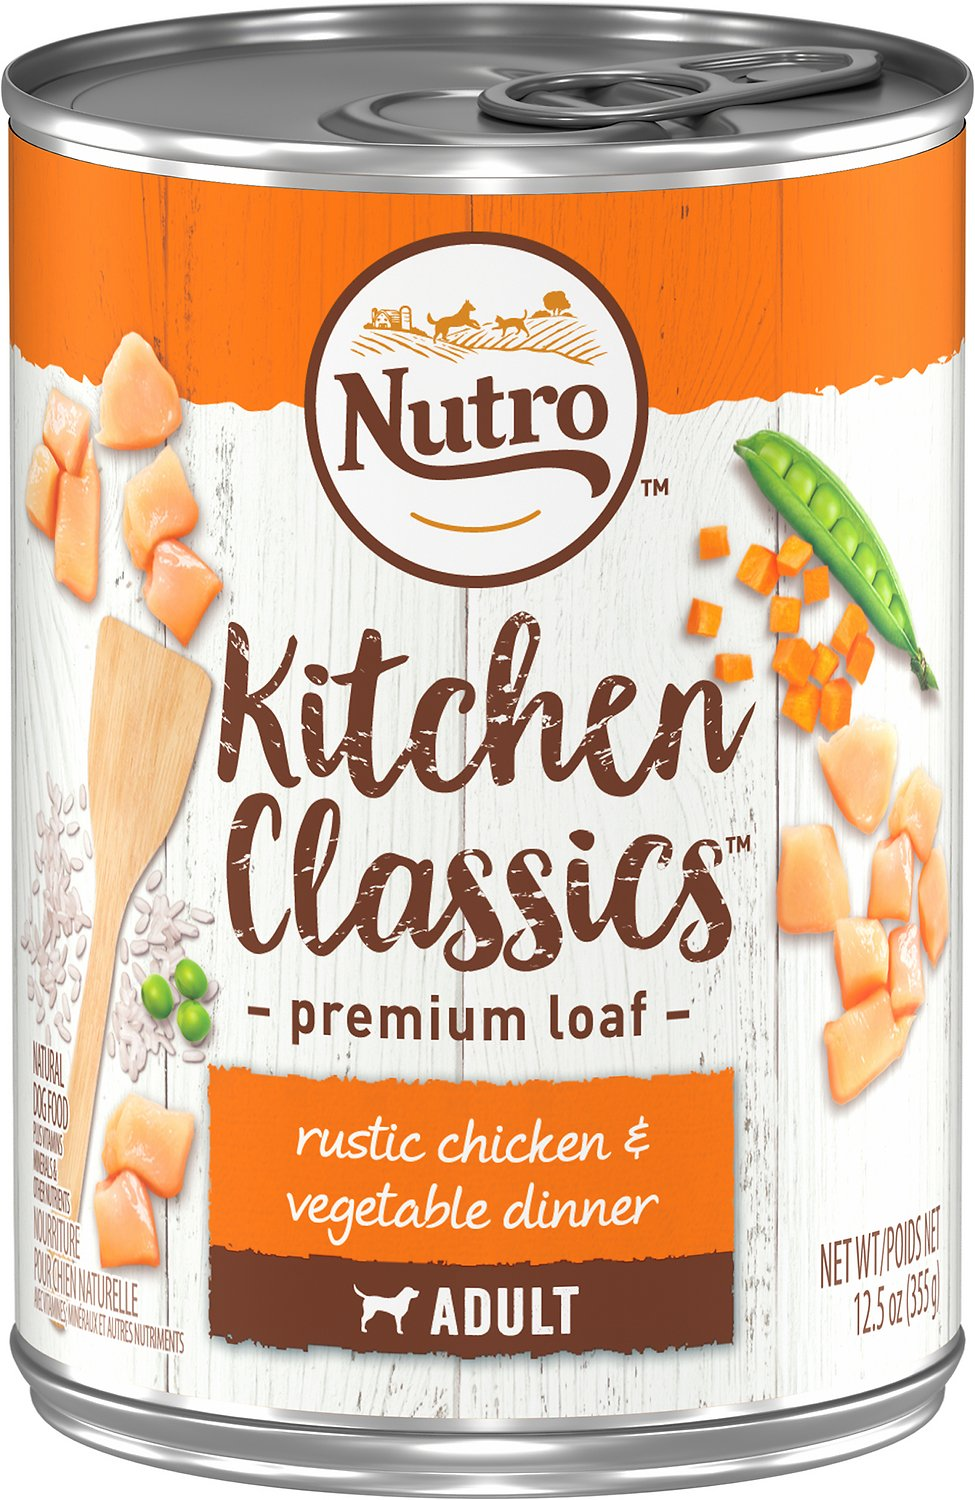 Nutro Adult Kitchen Classics Rustic Chicken & Vegetable Dinner Canned Dog Food, 12.5-oz